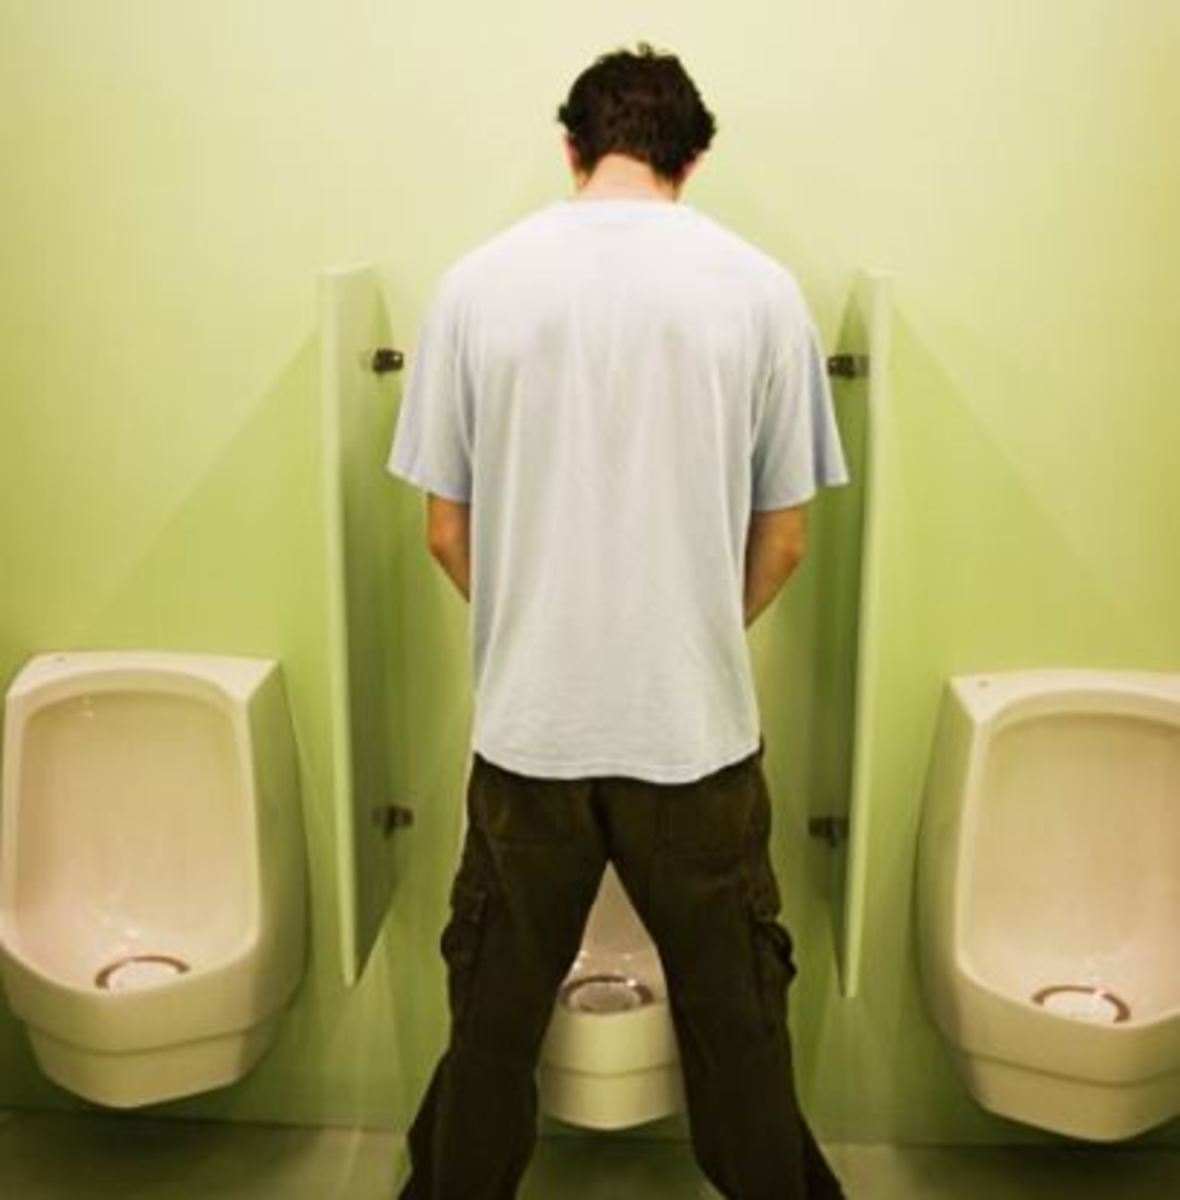 Why your urine splits into two streams during urination.